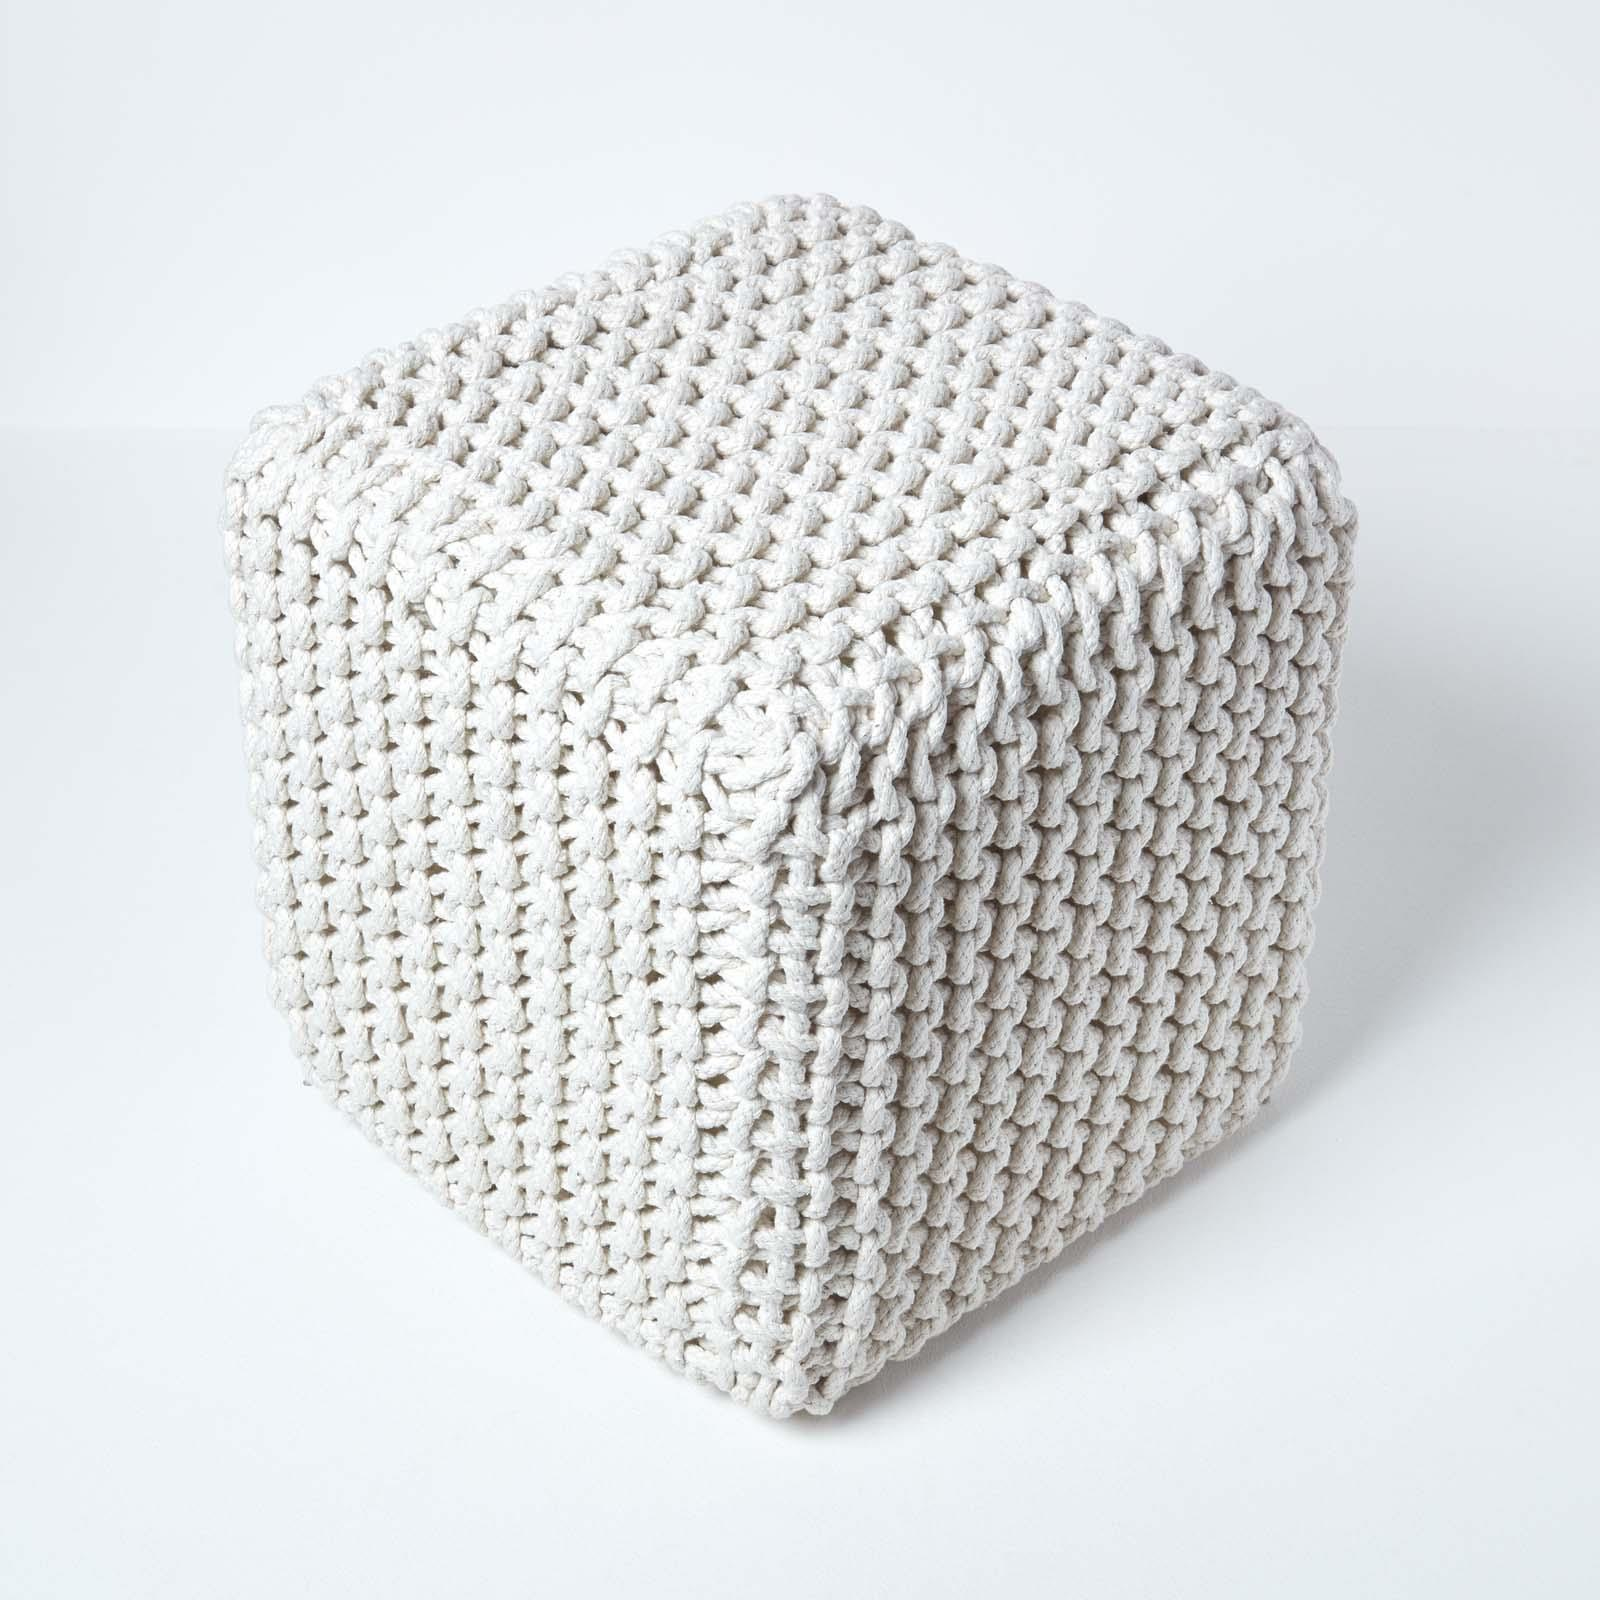 Hand-Knitted-100-Cotton-Pouffes-Round-Sphere-Or-Cube-Square-Chunky-Footstools thumbnail 93